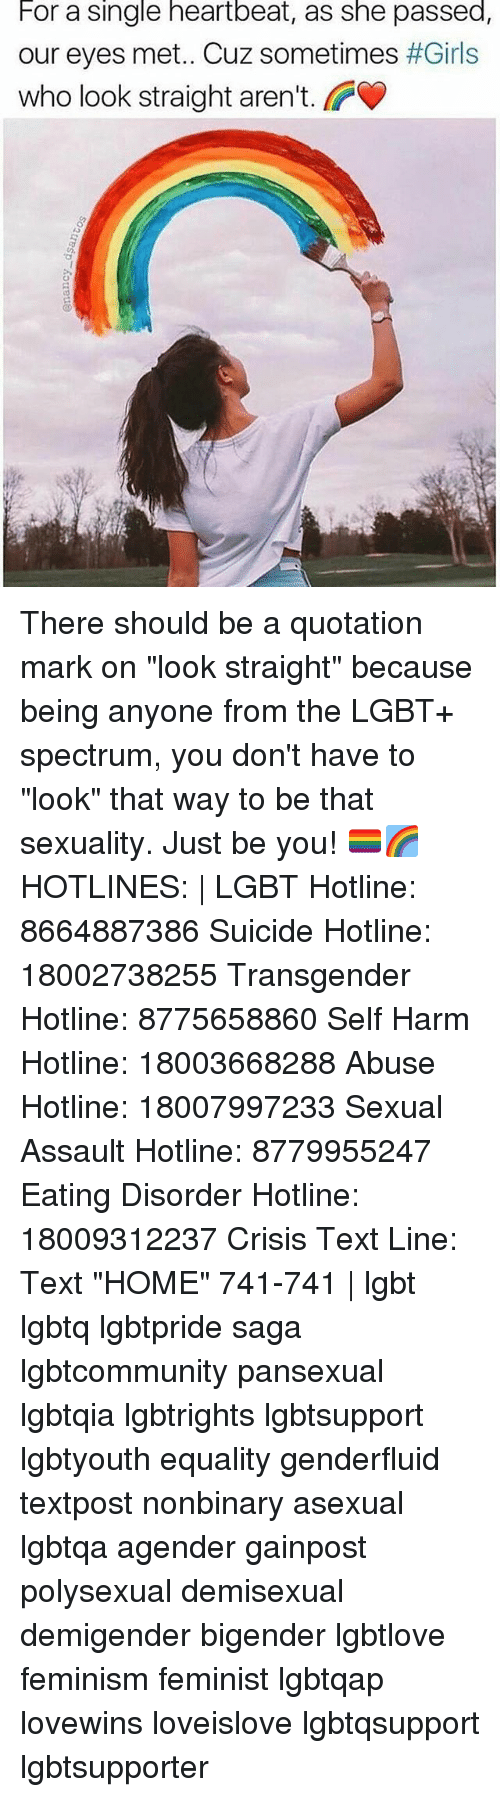 """heartbeats: For a single heartbeat, as she passed,  our eyes met. Cuz sometimes #Girls  who look straight aren't.  O) There should be a quotation mark on """"look straight"""" because being anyone from the LGBT+ spectrum, you don't have to """"look"""" that way to be that sexuality. Just be you! 🏳️🌈🌈 HOTLINES: 